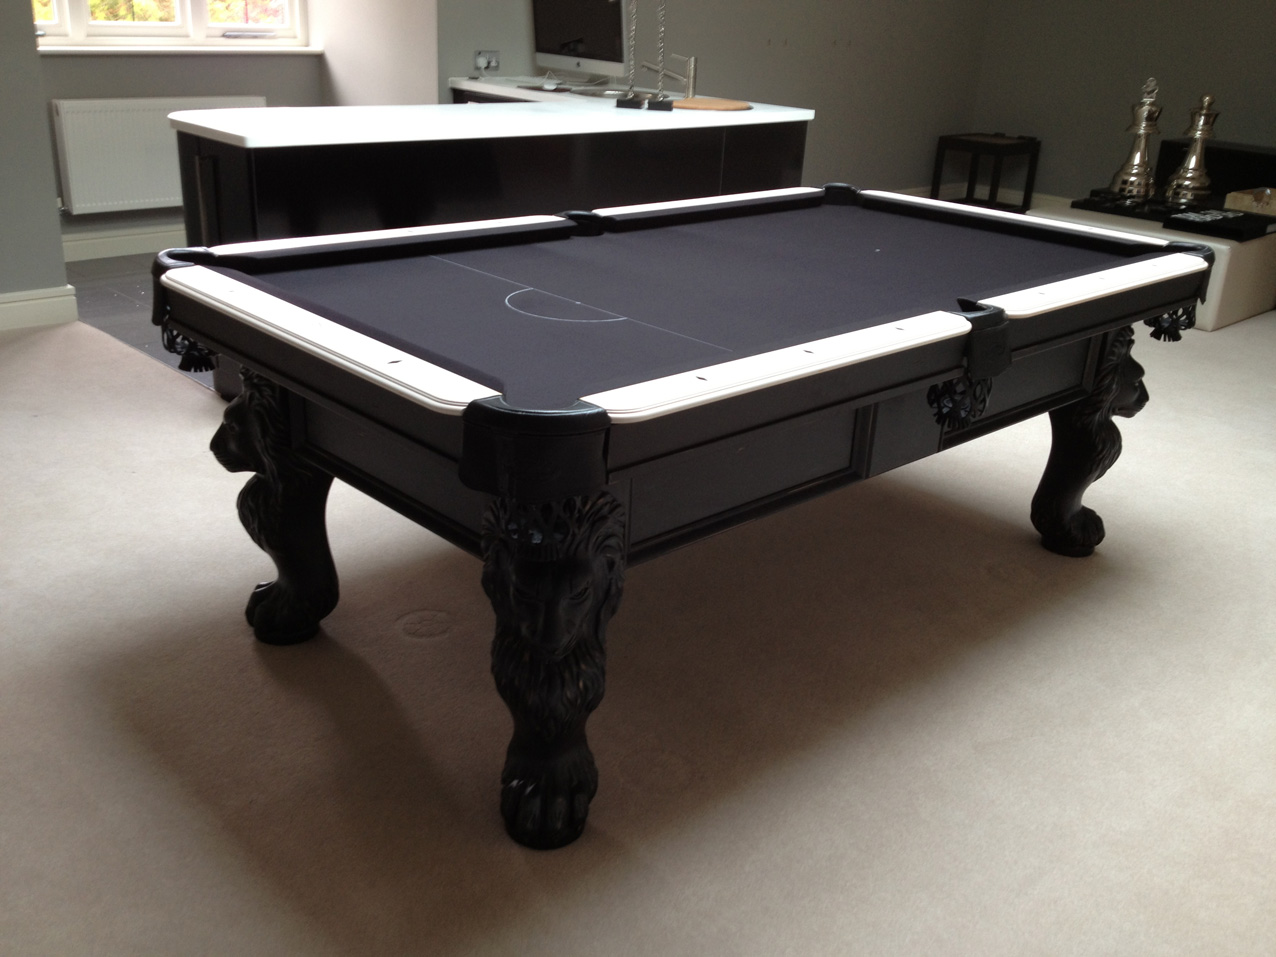 Used Olhausen Pool Tables For Sale Alfa img - Showing > Black Pool Table